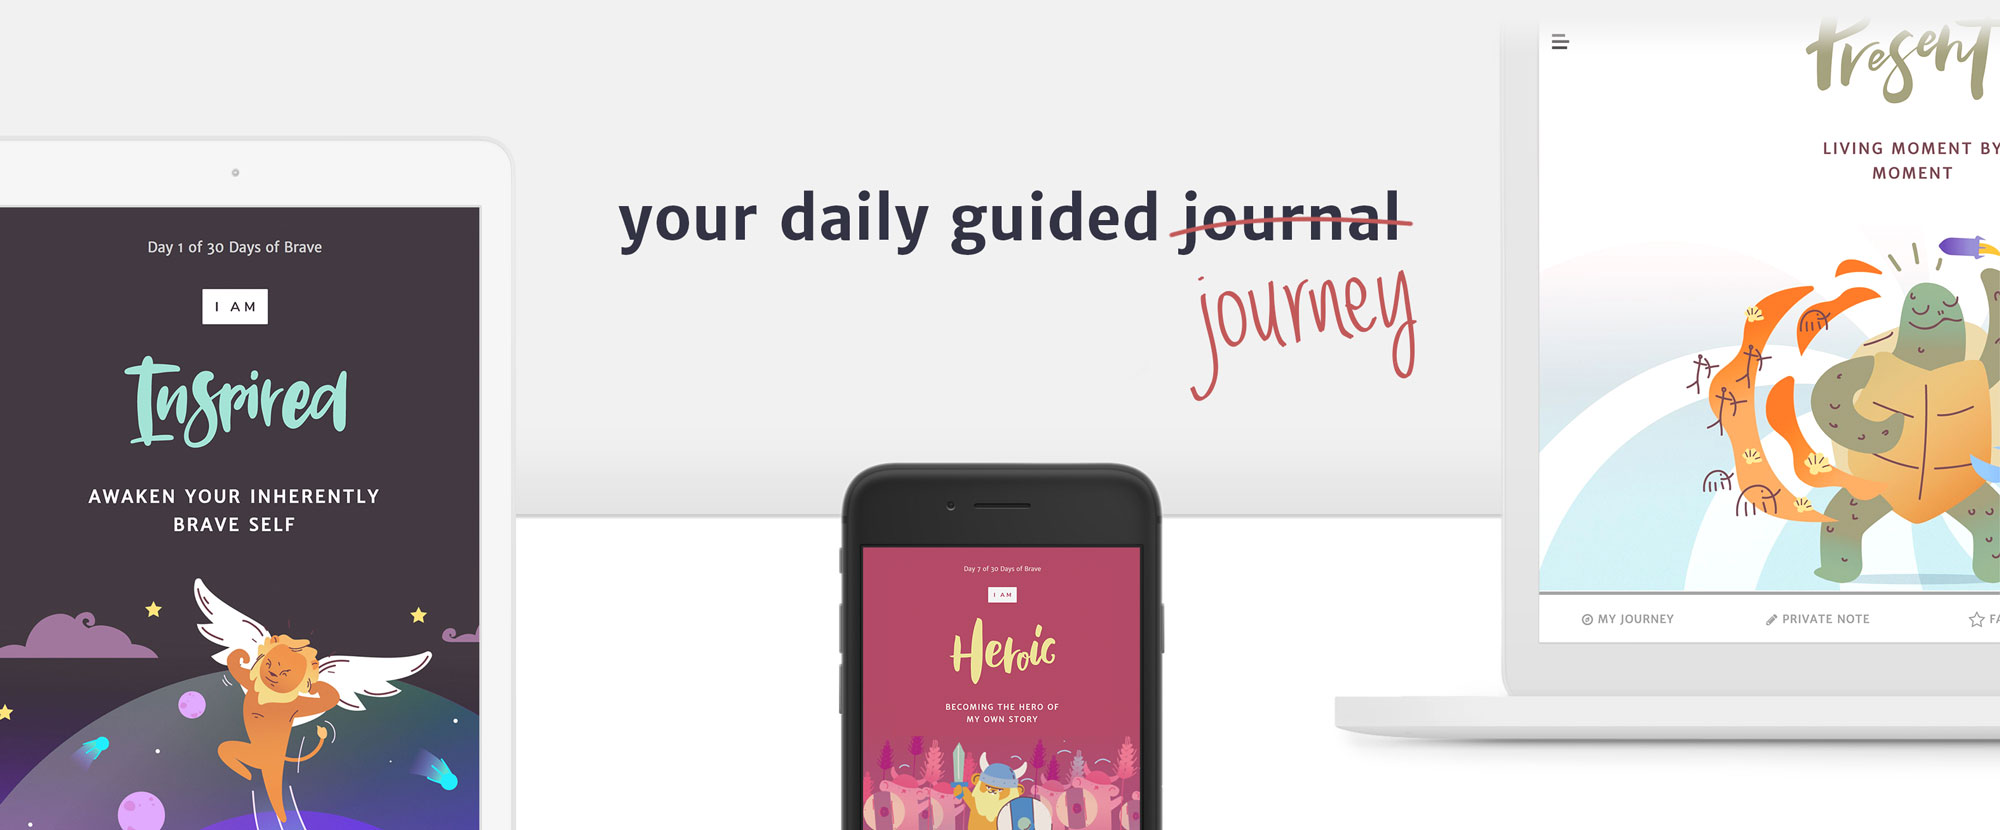 your daily guided journey